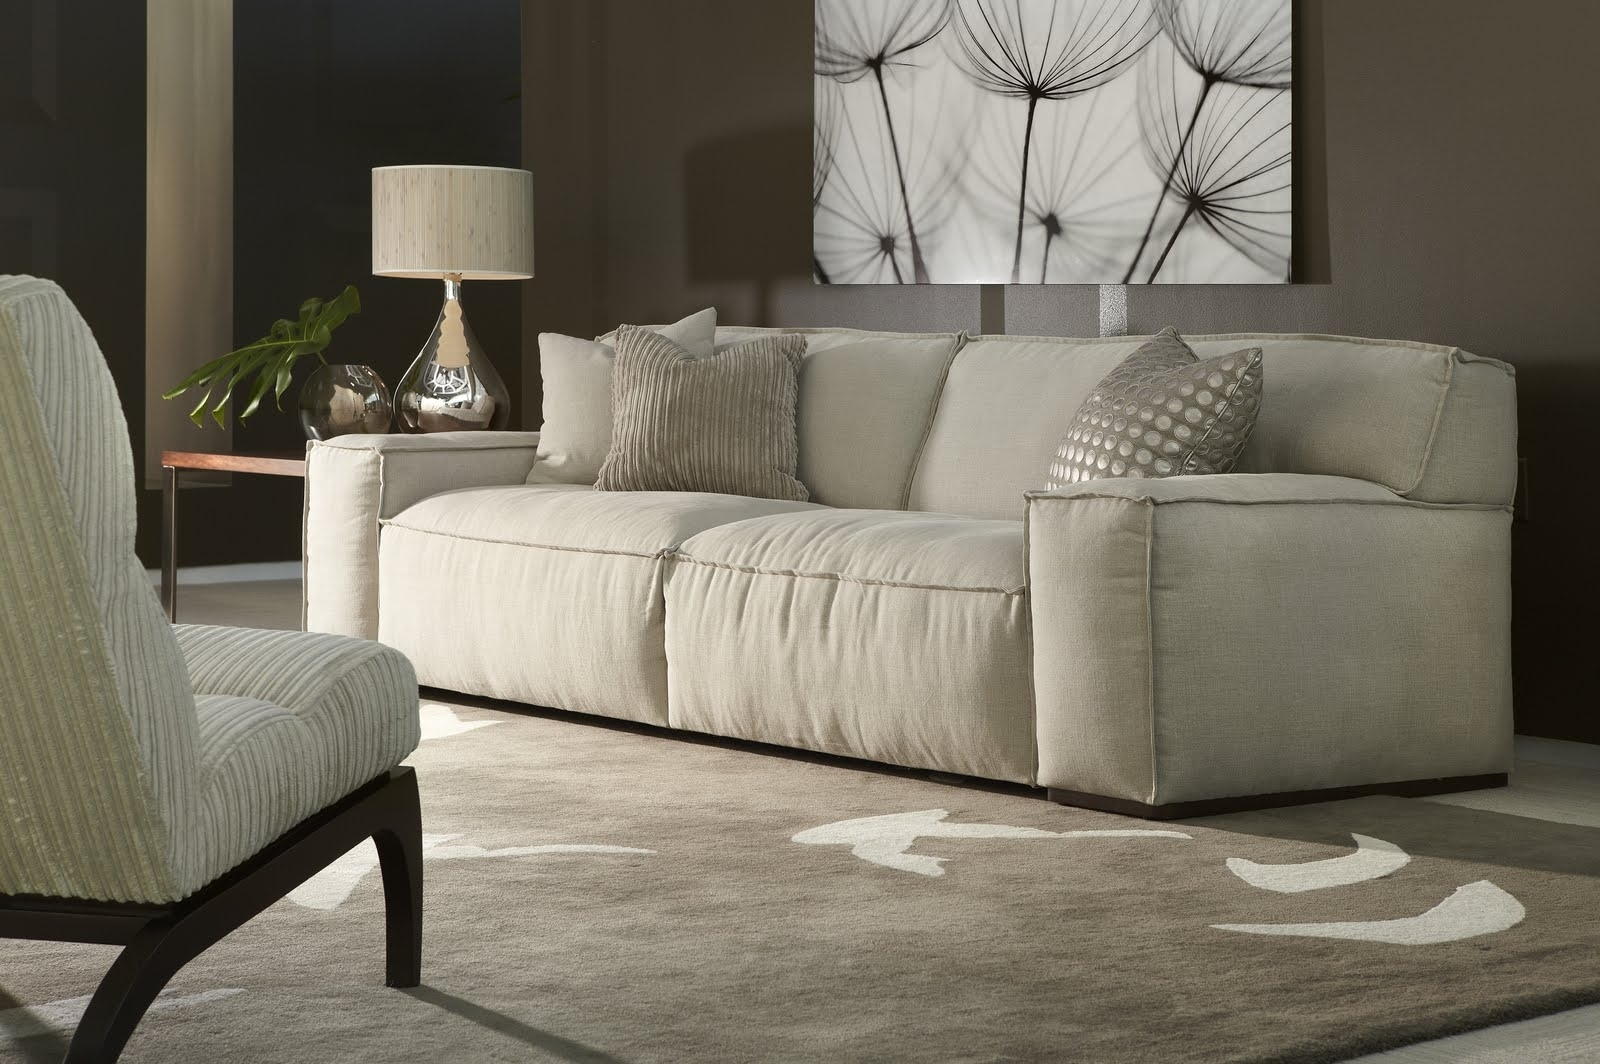 Favorite Sectional Sofa Design: Down Sectional Sofa Blend Wrapped Goose Regarding Down Feather Sectional Sofas (View 9 of 20)